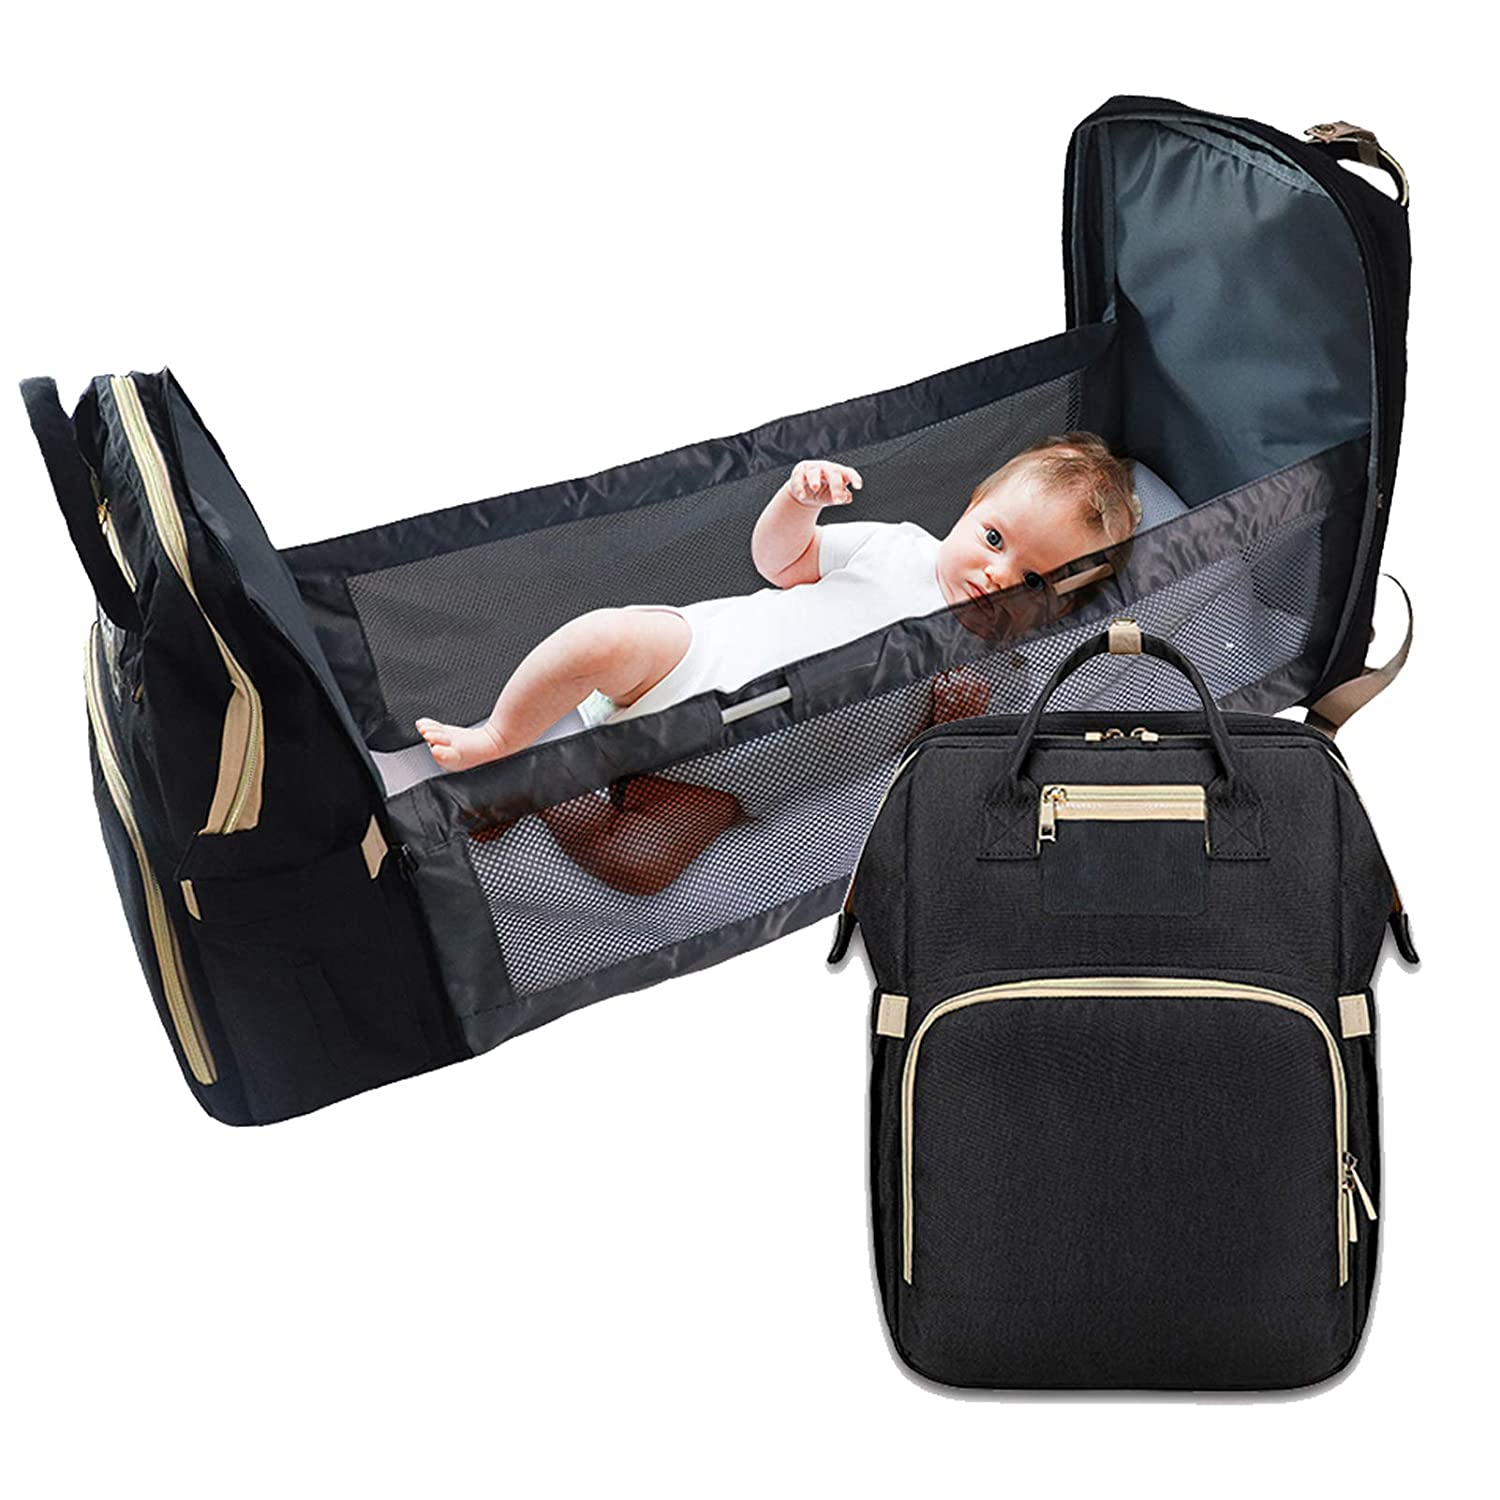 0-12 Months Portable Diaper Changing Station Lightweight Mummy Bag Backpack Nappy Changing Bags Lightweight Crib Multifunctional Baby Travel Cot Waterproof Foldable Baby Cot Bed for Baby Care